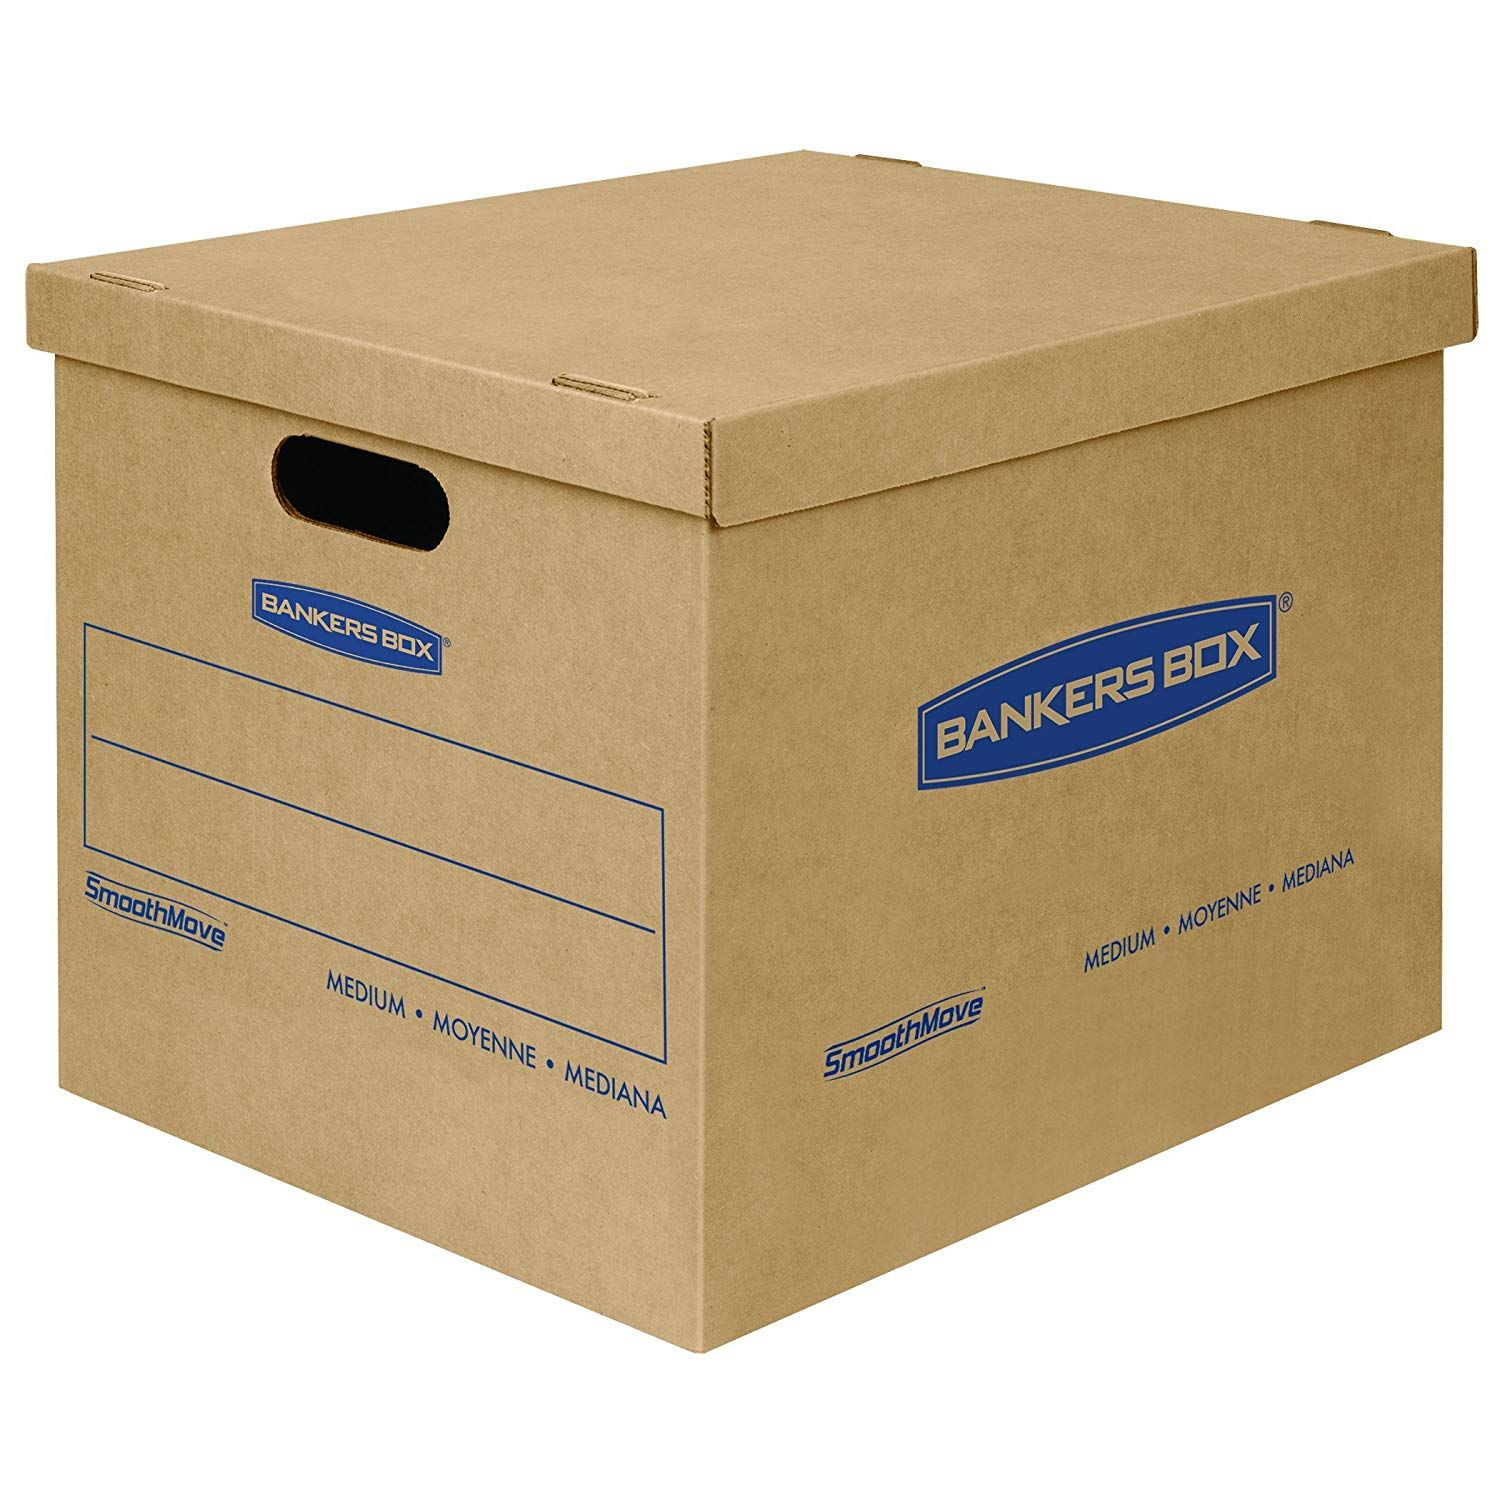 Mediumsize moving boxes with lids make it easy to pack